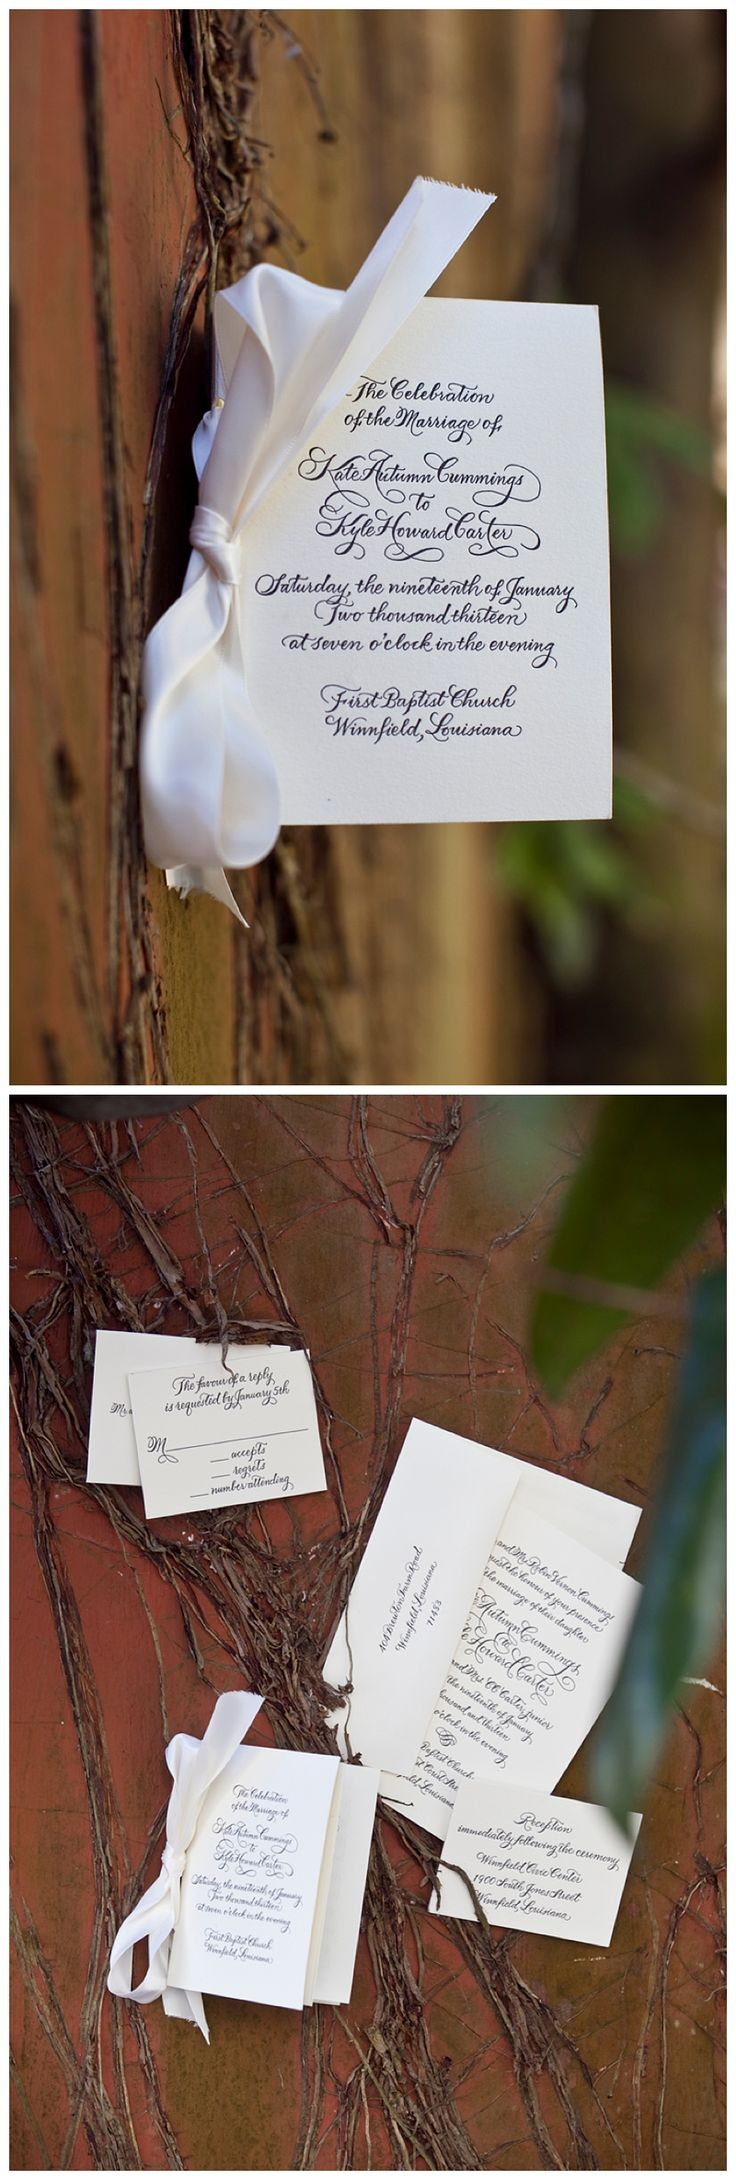 46 best Southern Wedding images on Pinterest | Southern weddings ...